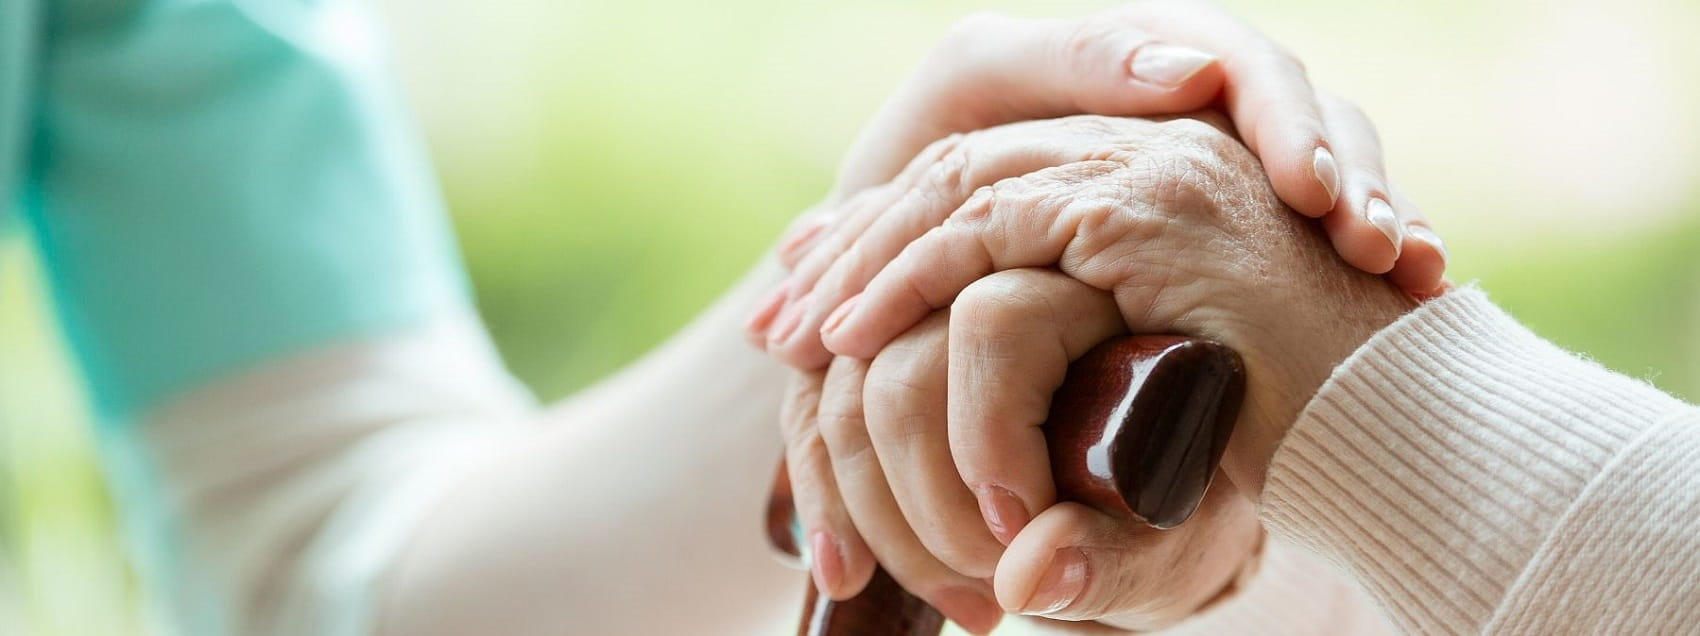 who pays for hospice care in a nursing home